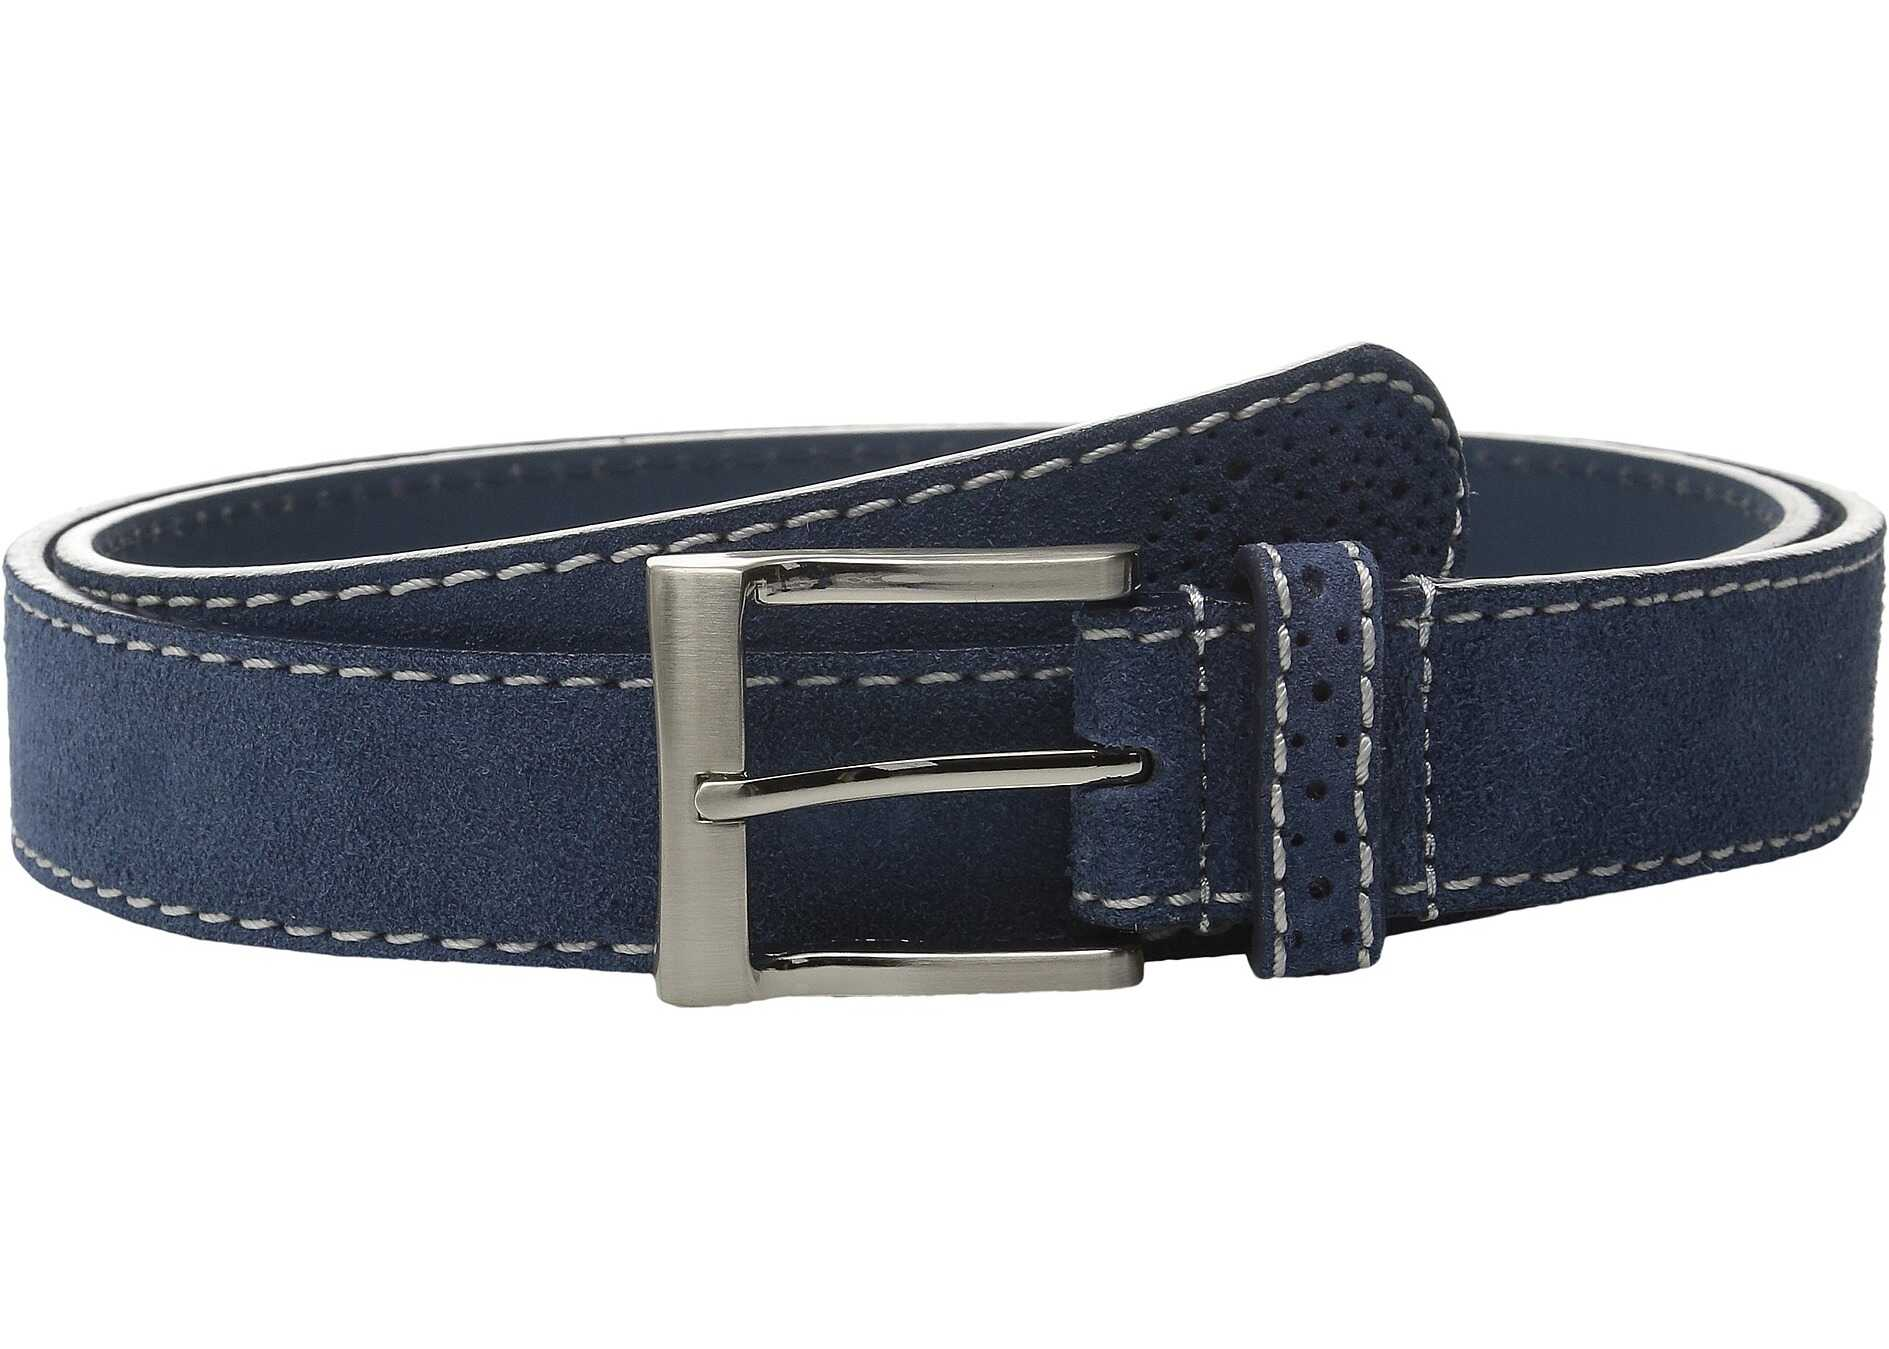 Florsheim 32mm Suede Leather Belt Navy